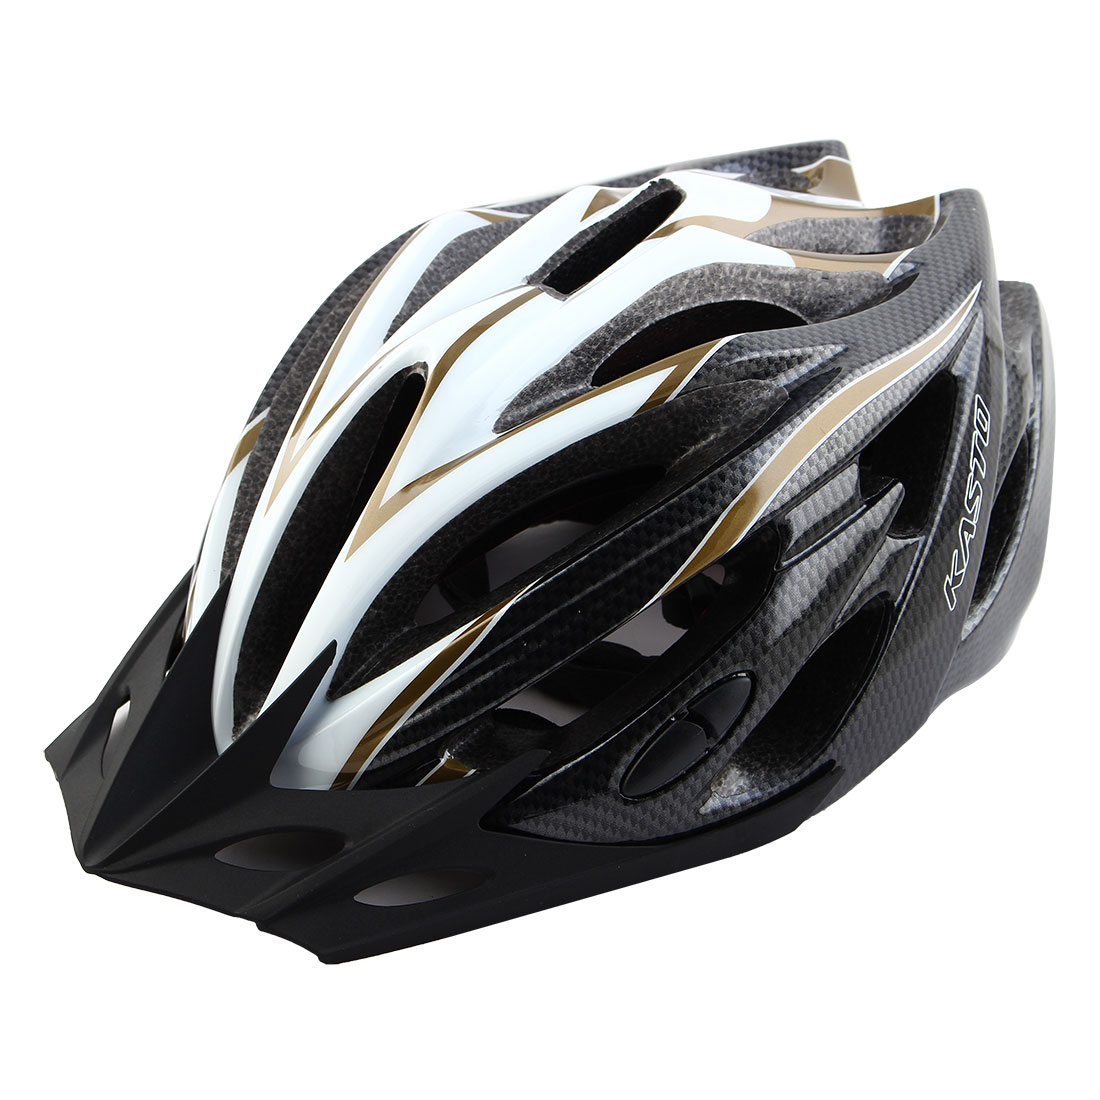 Adult Unisex 21 Holes Portable Cycling Cap Head Safety Protector Riding Hat Adjustable Biking Helmet Black White